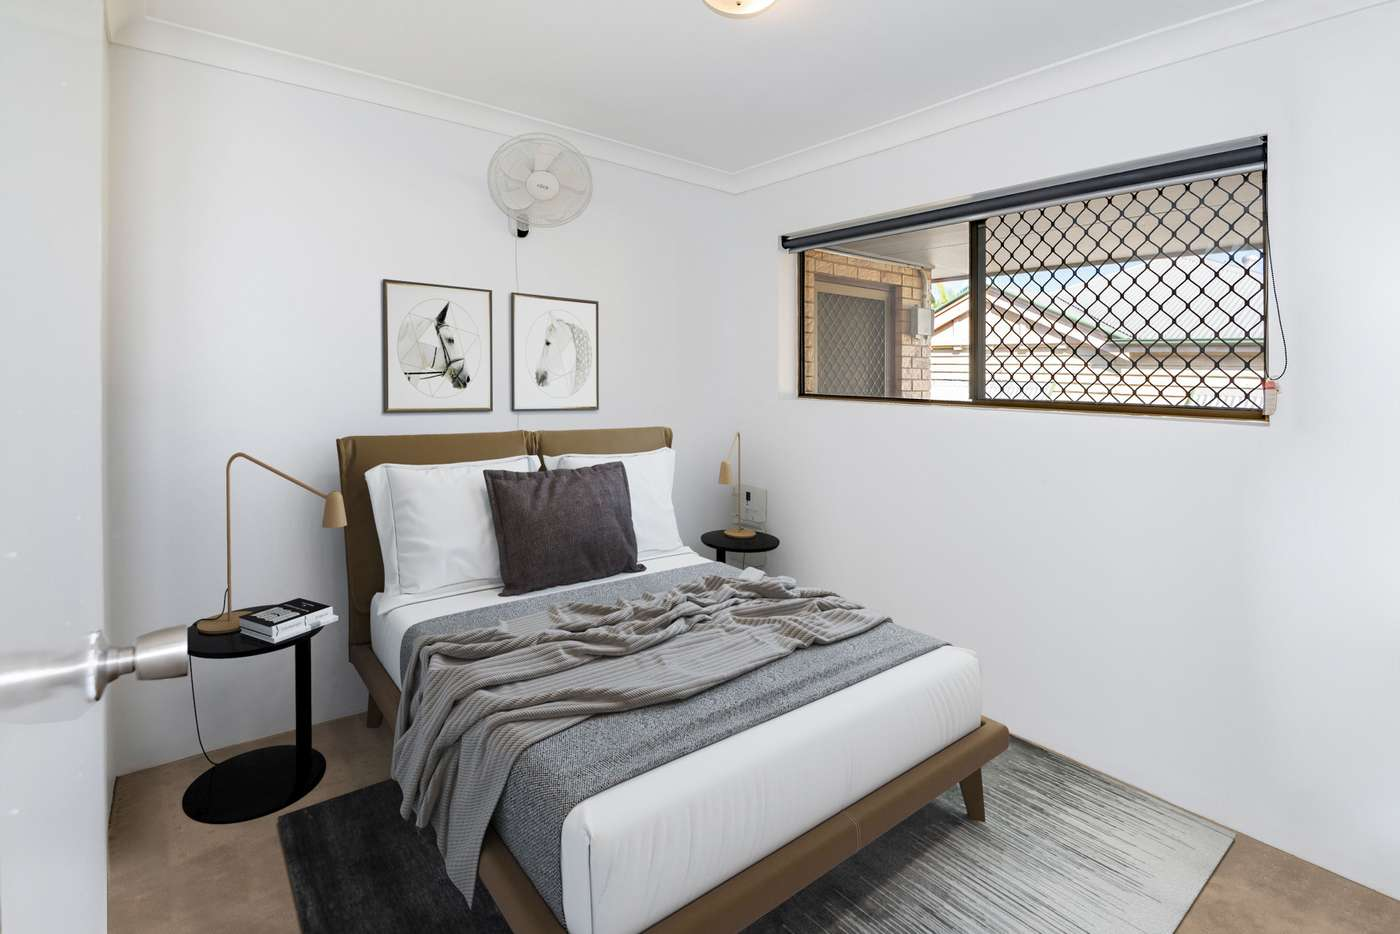 Fifth view of Homely apartment listing, 4/34 Winchester Street, Hamilton QLD 4007